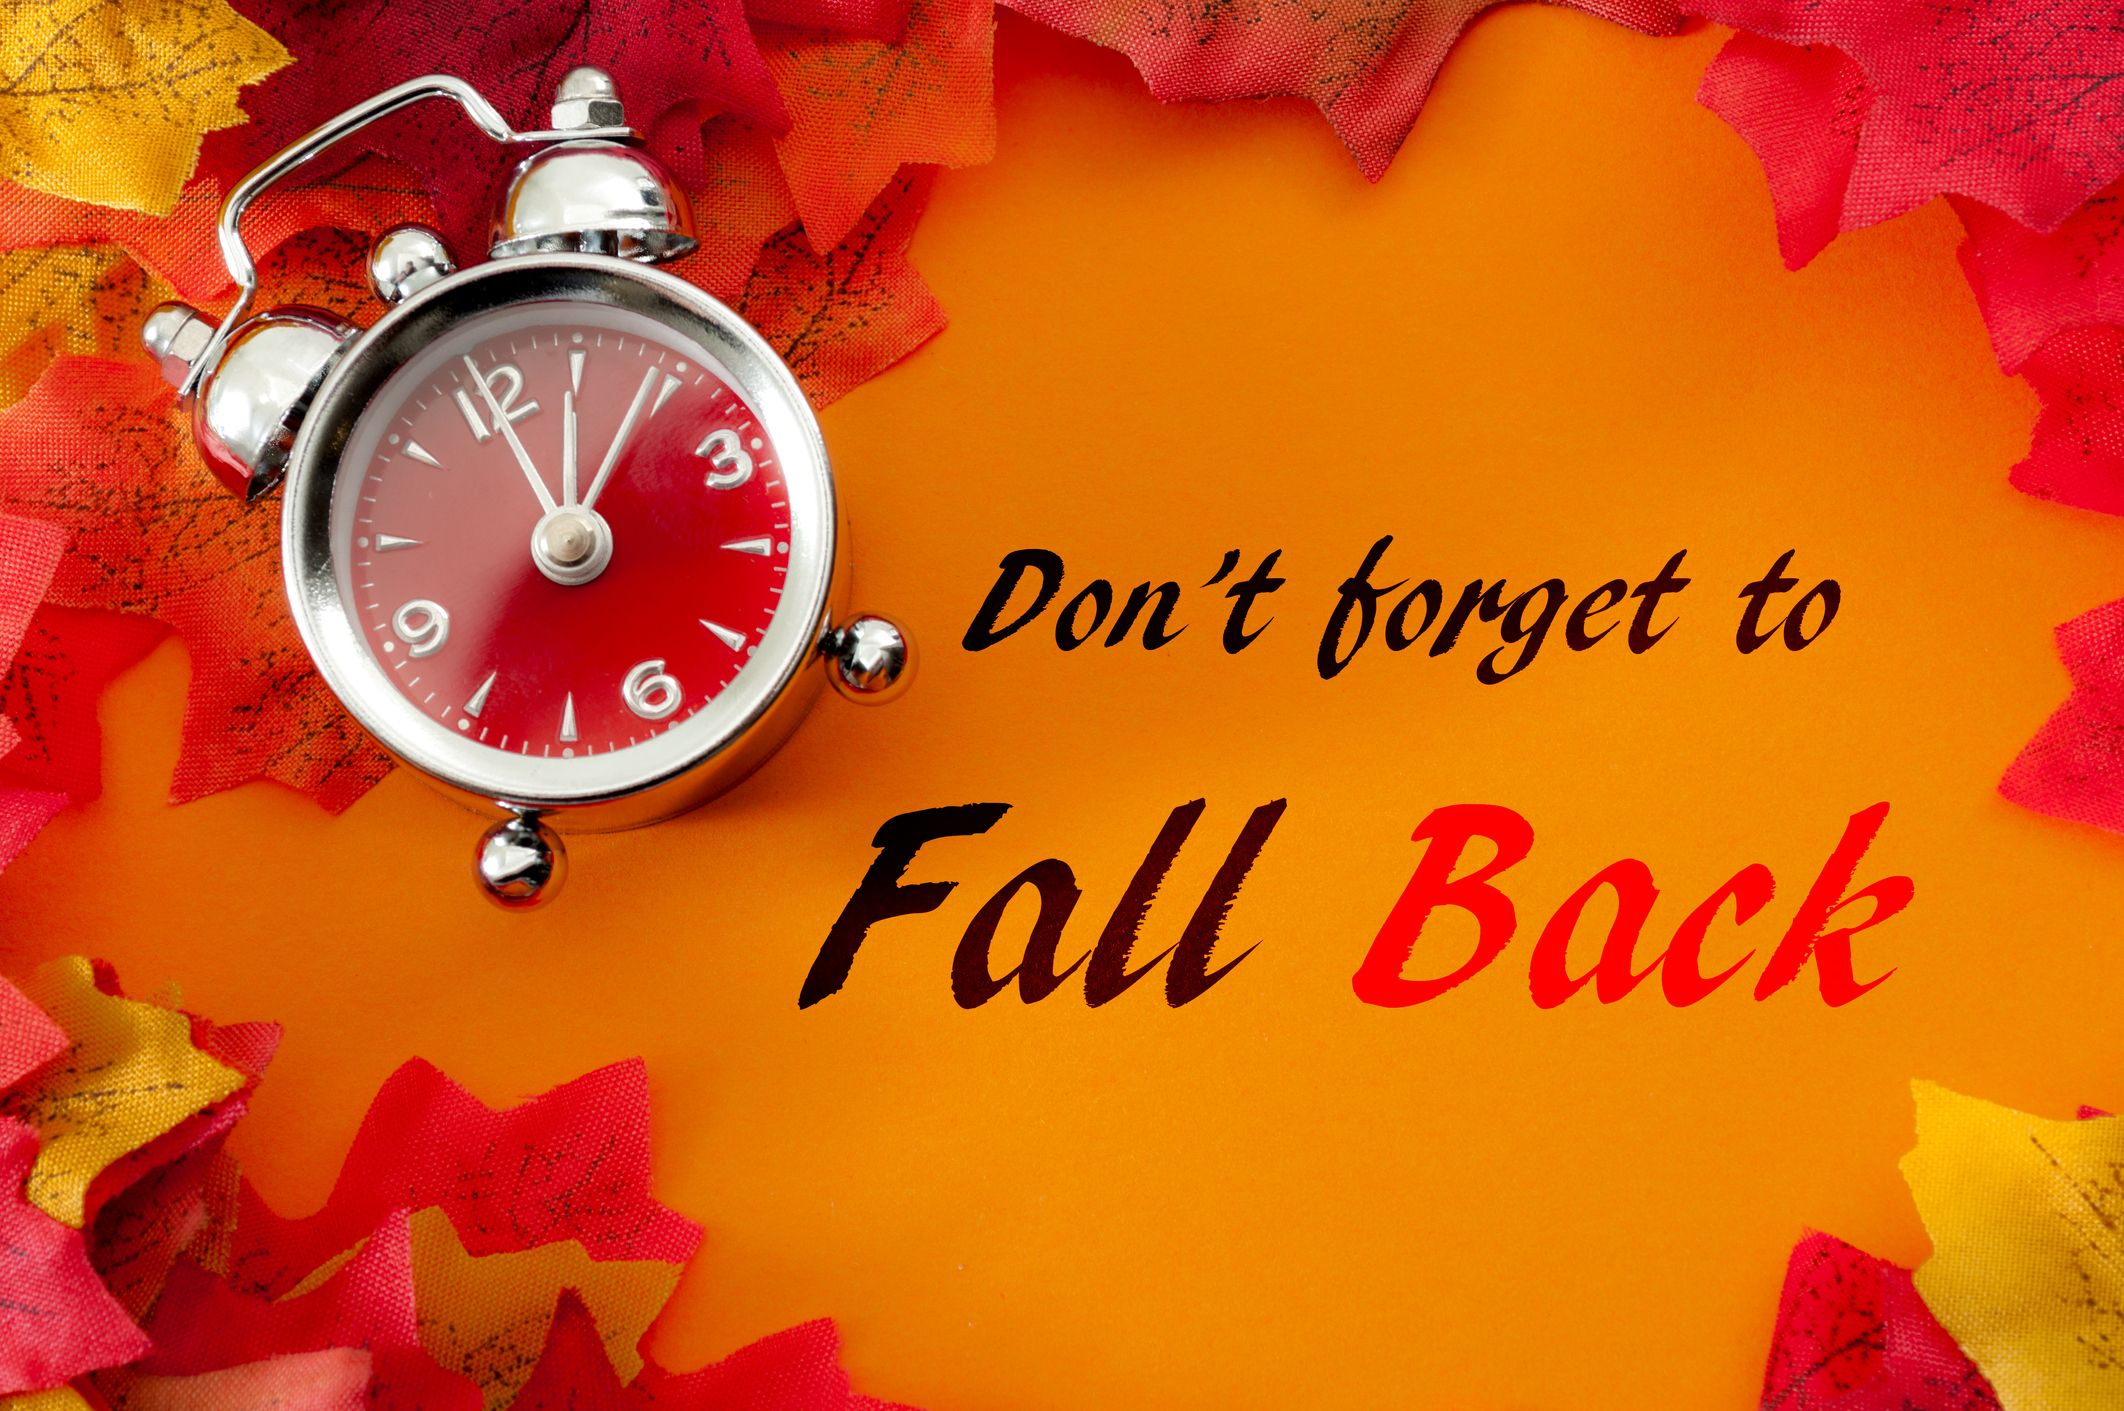 Old school clock with leaves in background and text